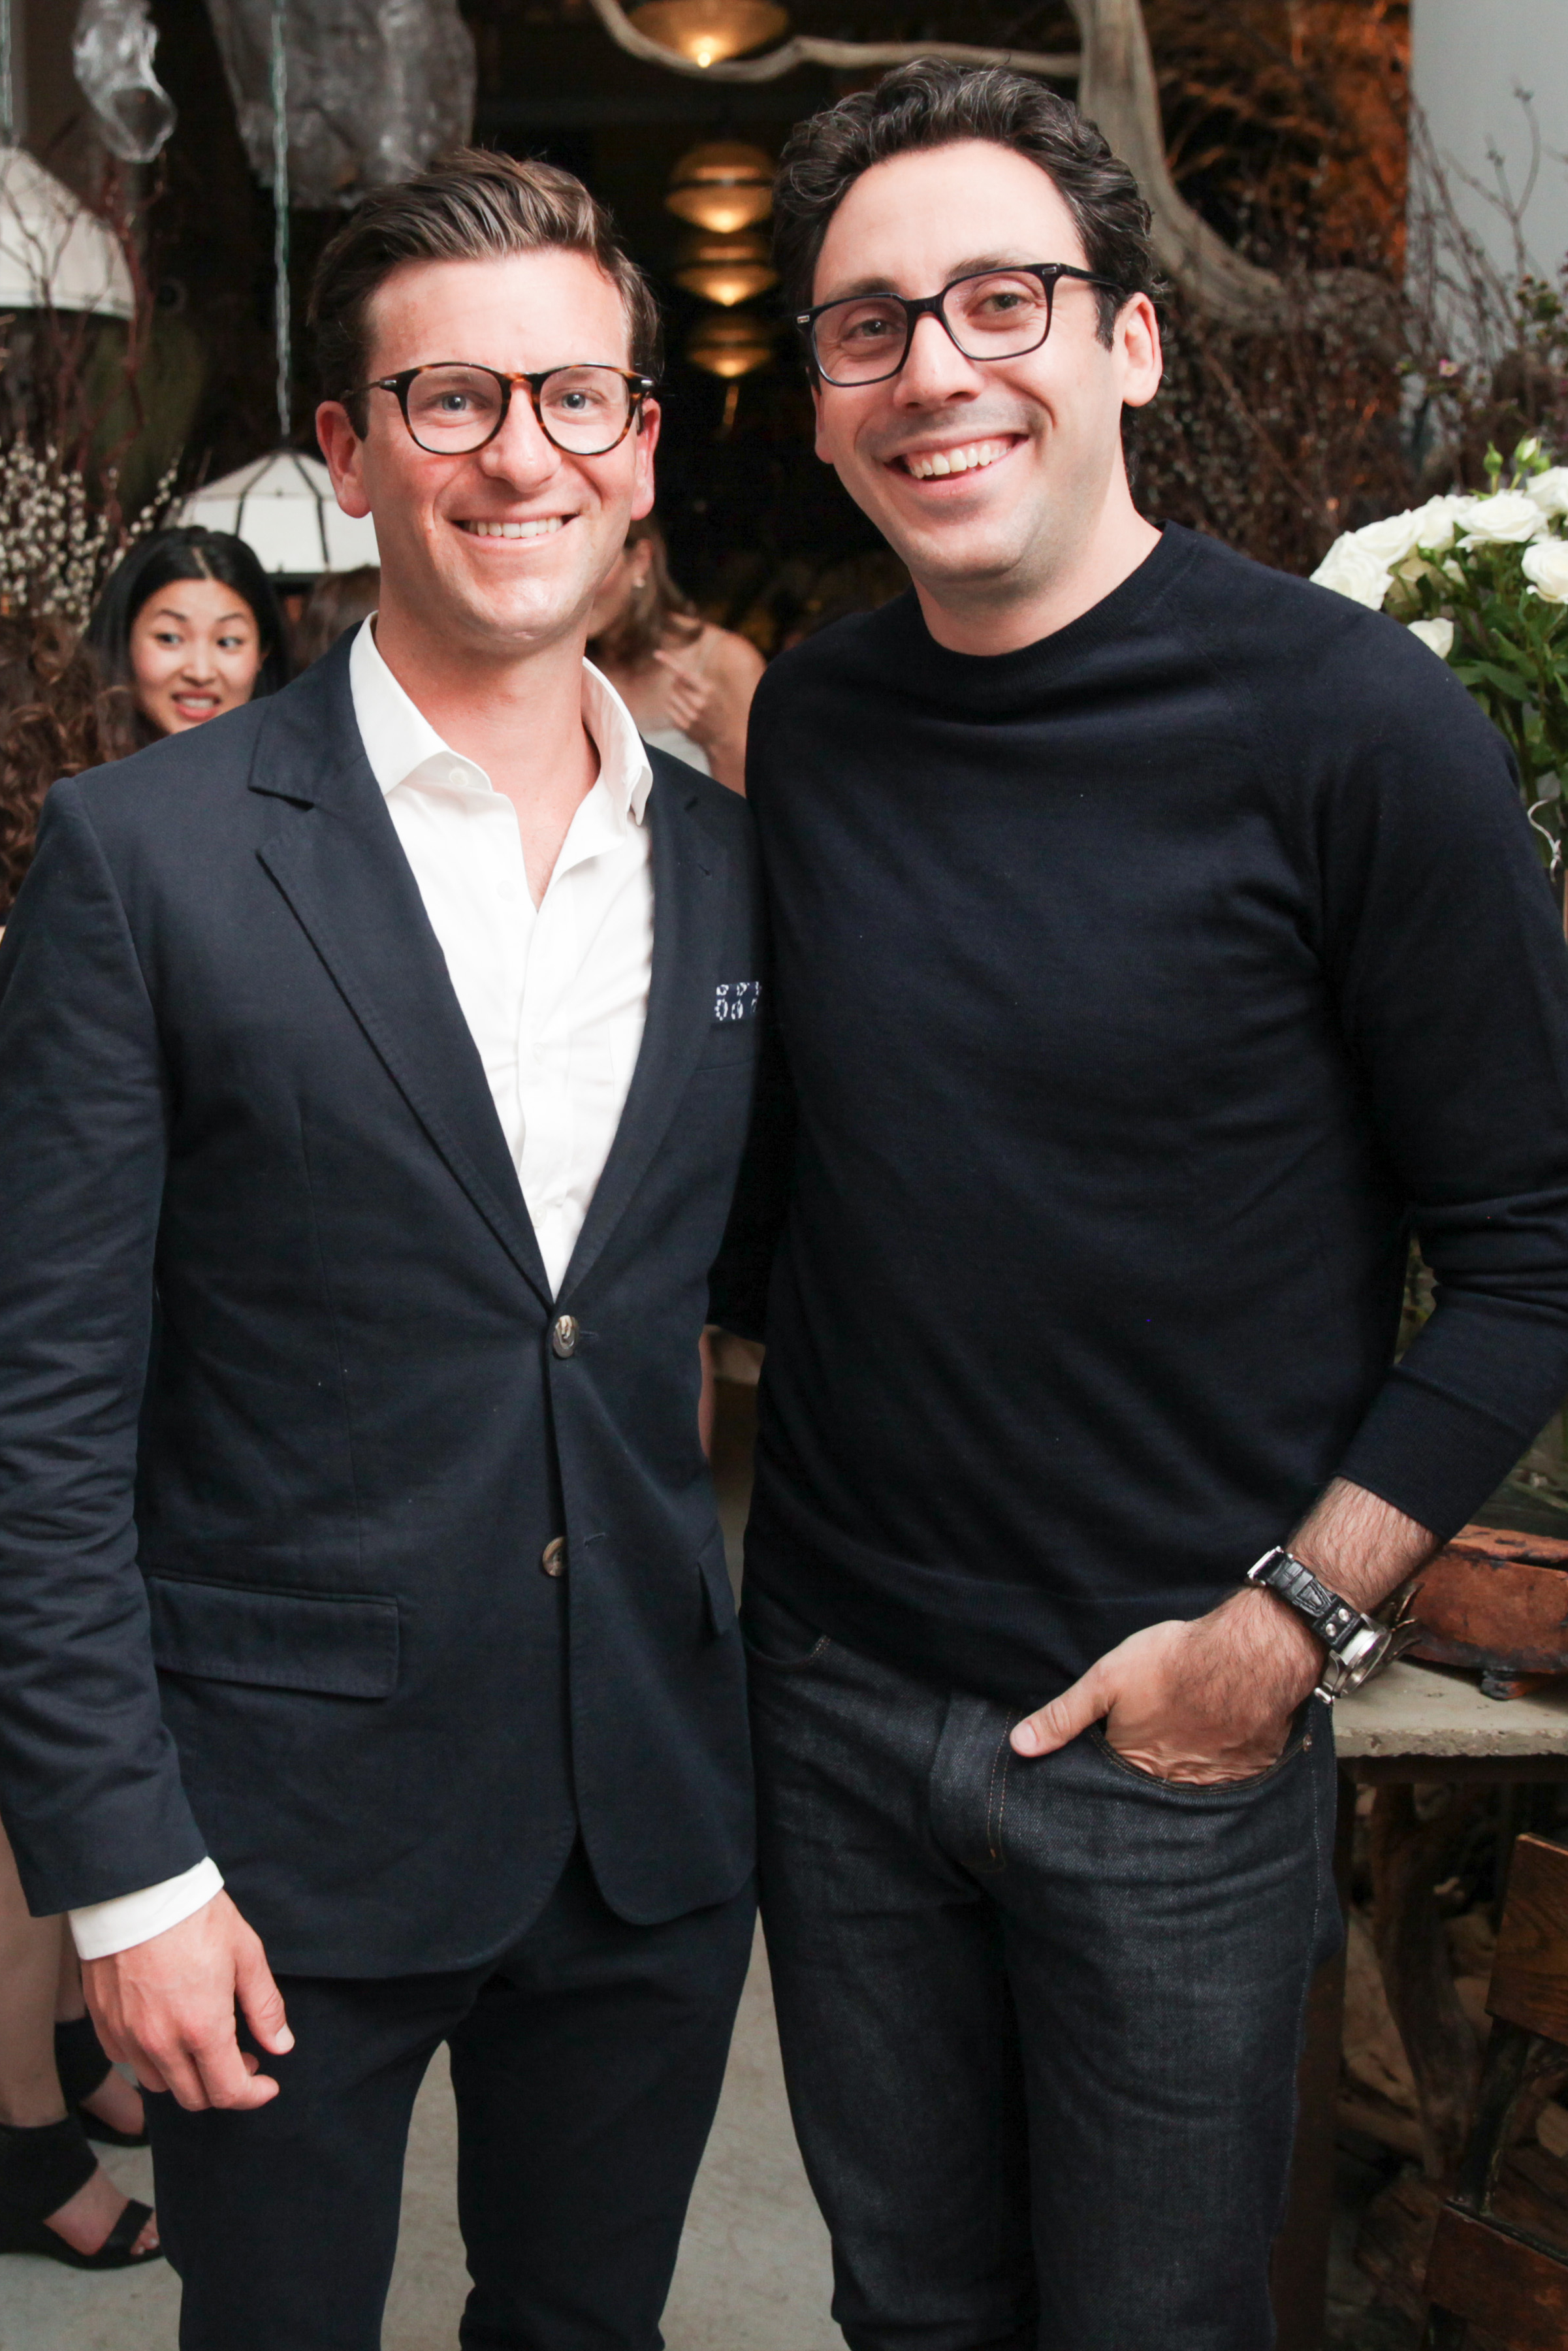 Dave Gilboa and Neil Blumenthal of Warby Parker.